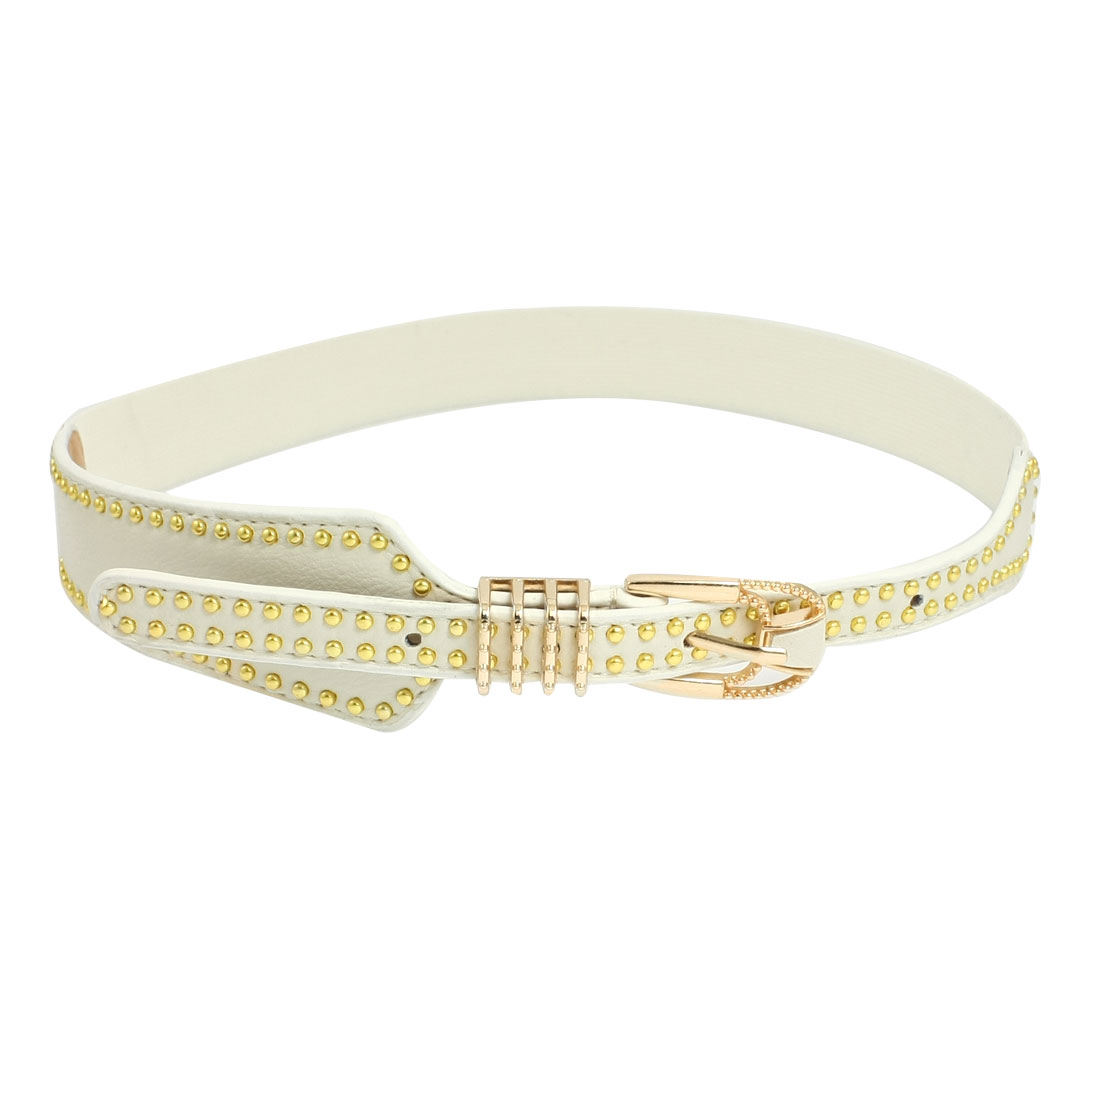 Lady Single Pin Buckle Metal Round Bead Decor Elastic Waist Belt Band White